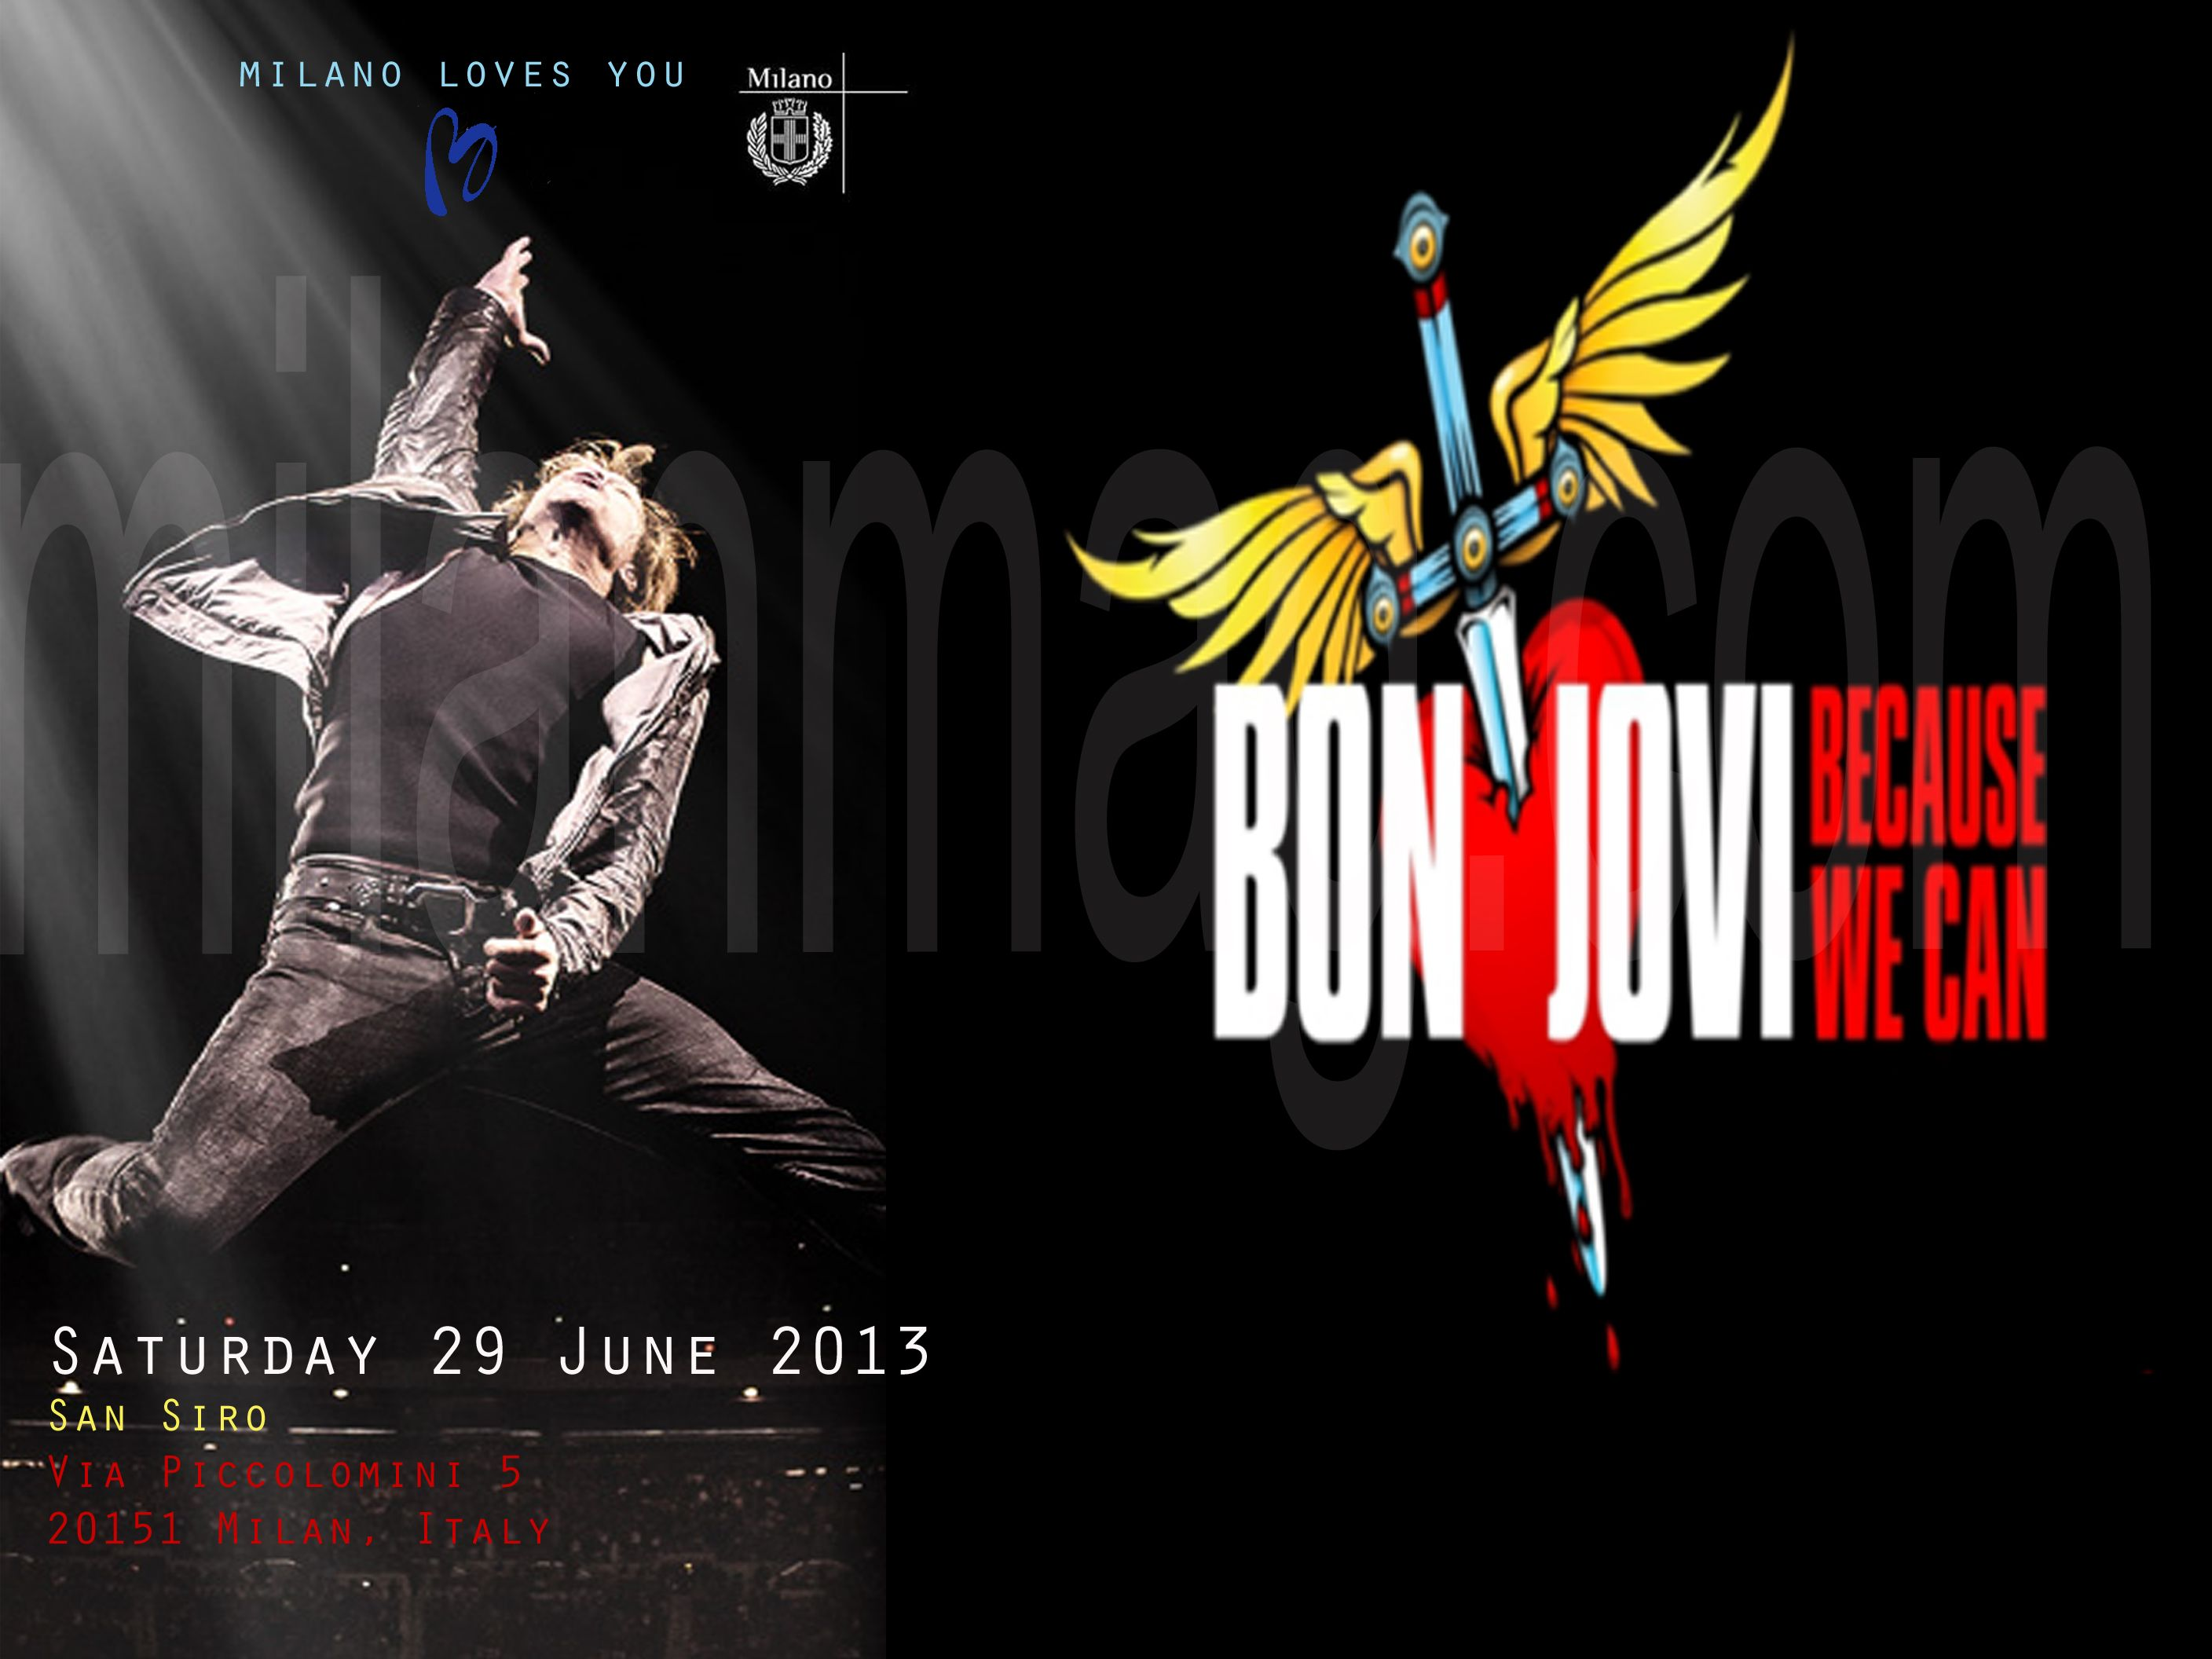 THE CONCERT OF BON JOVI IN MILAN IS ON  JUNE 29TH AT SAN SIRO STADIUM AND STARTS AT 20:30  DONT MISS THE DATE       BOOK YOUR ROOM AND GET YOUR APPOINTMENT AT SAN SIRO  http://www.hotelscombined.com/IT/Hotel/Sheraton_Diana_Majestic_Hotel.htm?a_aid=68109